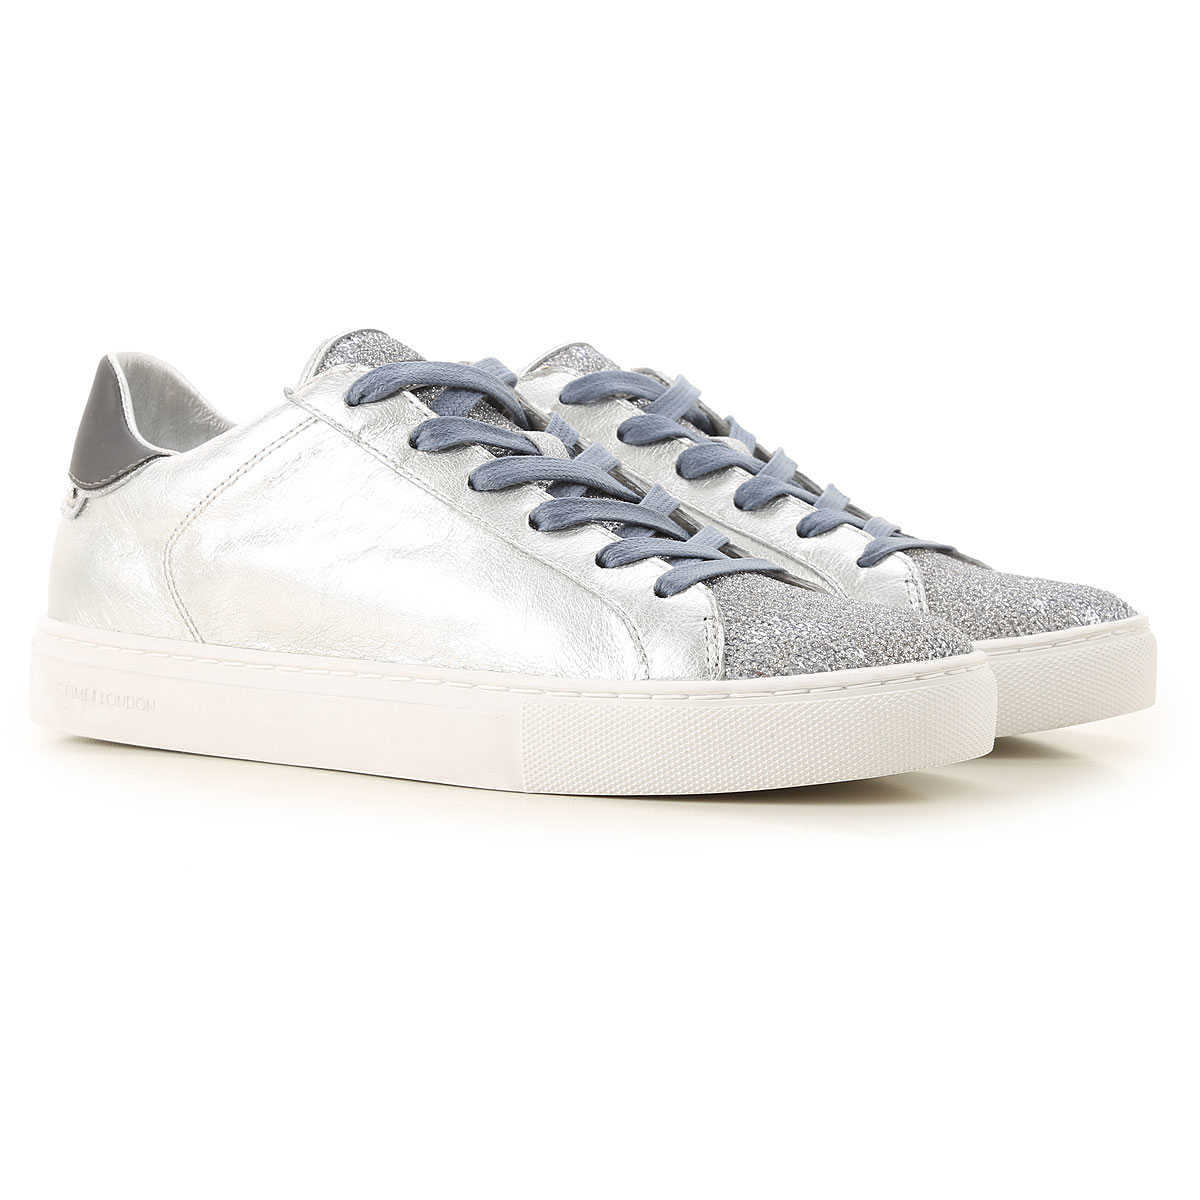 Crime Sneakers for Women On Sale Silver UK - GOOFASH